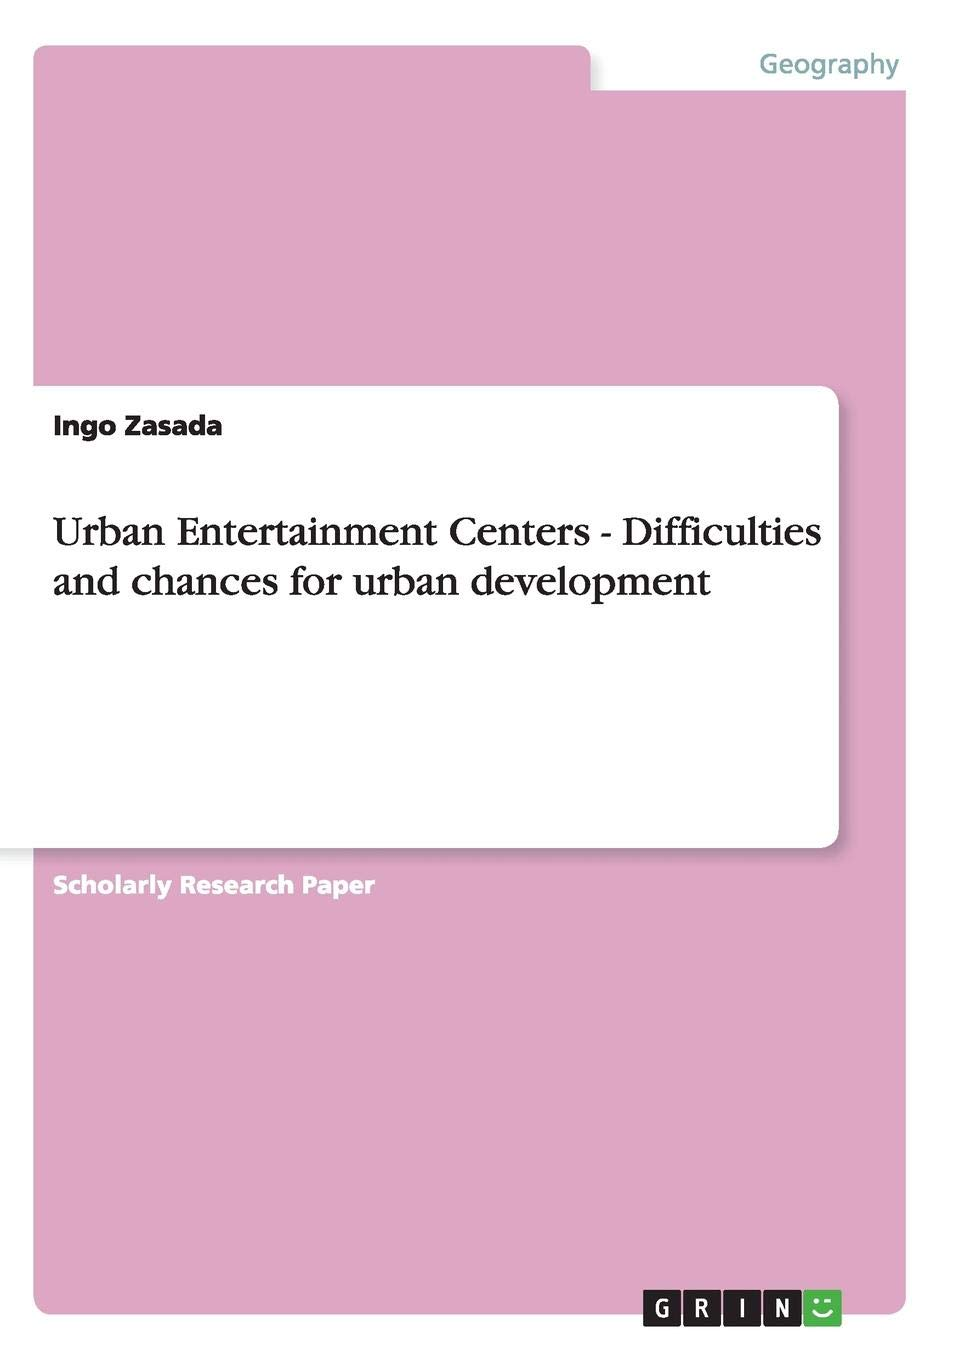 Urban Entertainment Centers - Difficulties and chances for